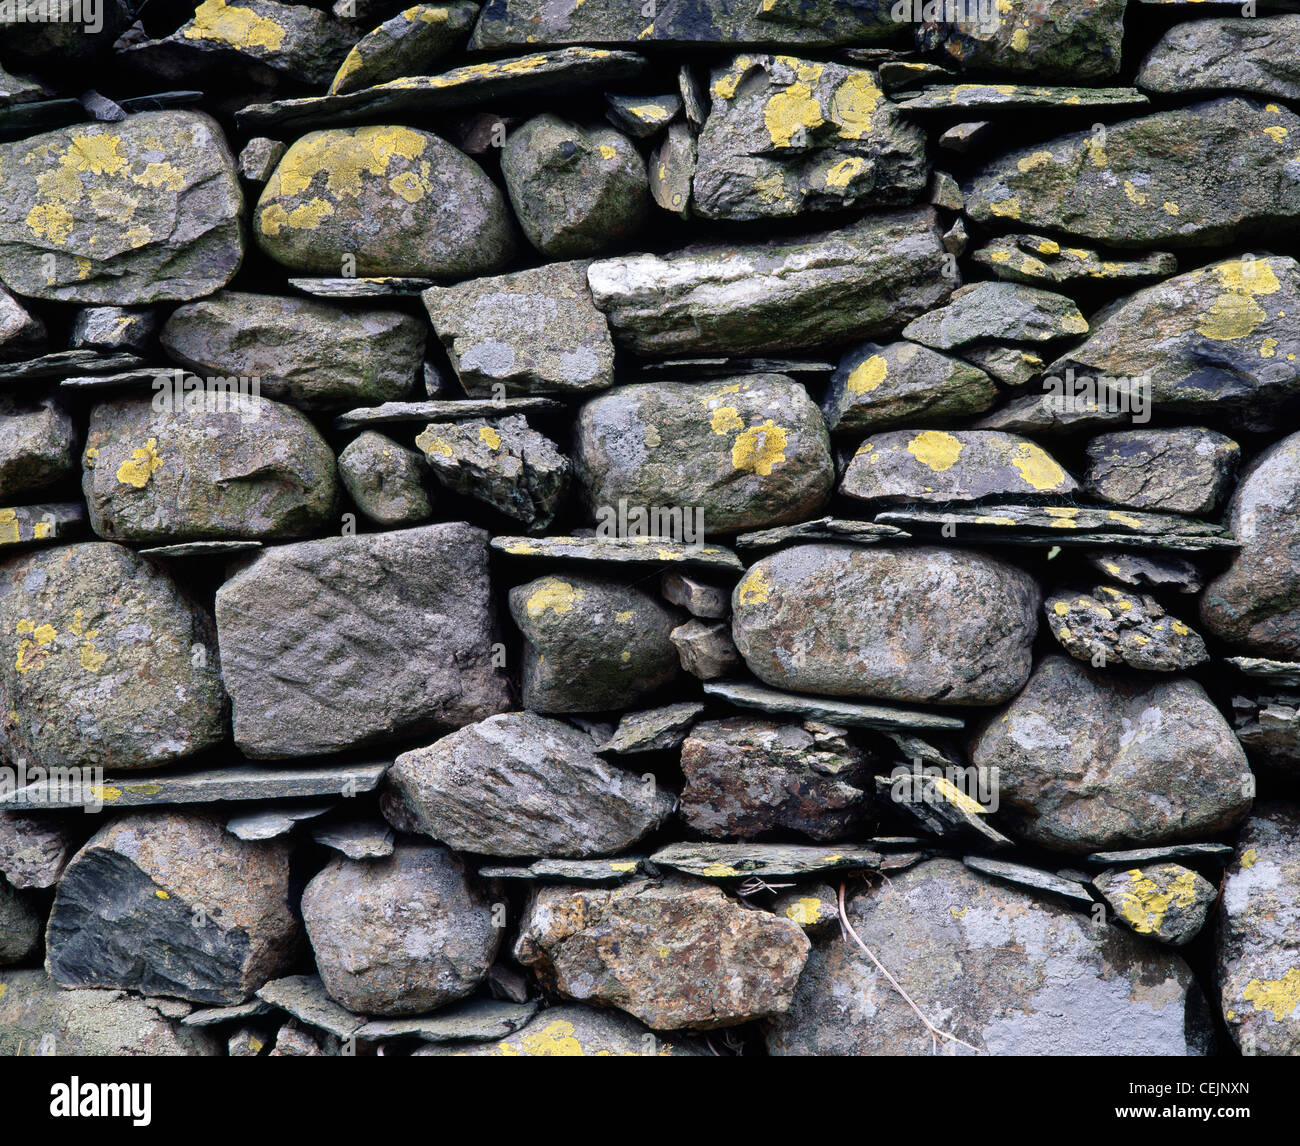 Trockenmauern Wand Nahaufnahme. Newlands Tal, Cumbria, England, UK. In den Lake District National Park. Stockbild